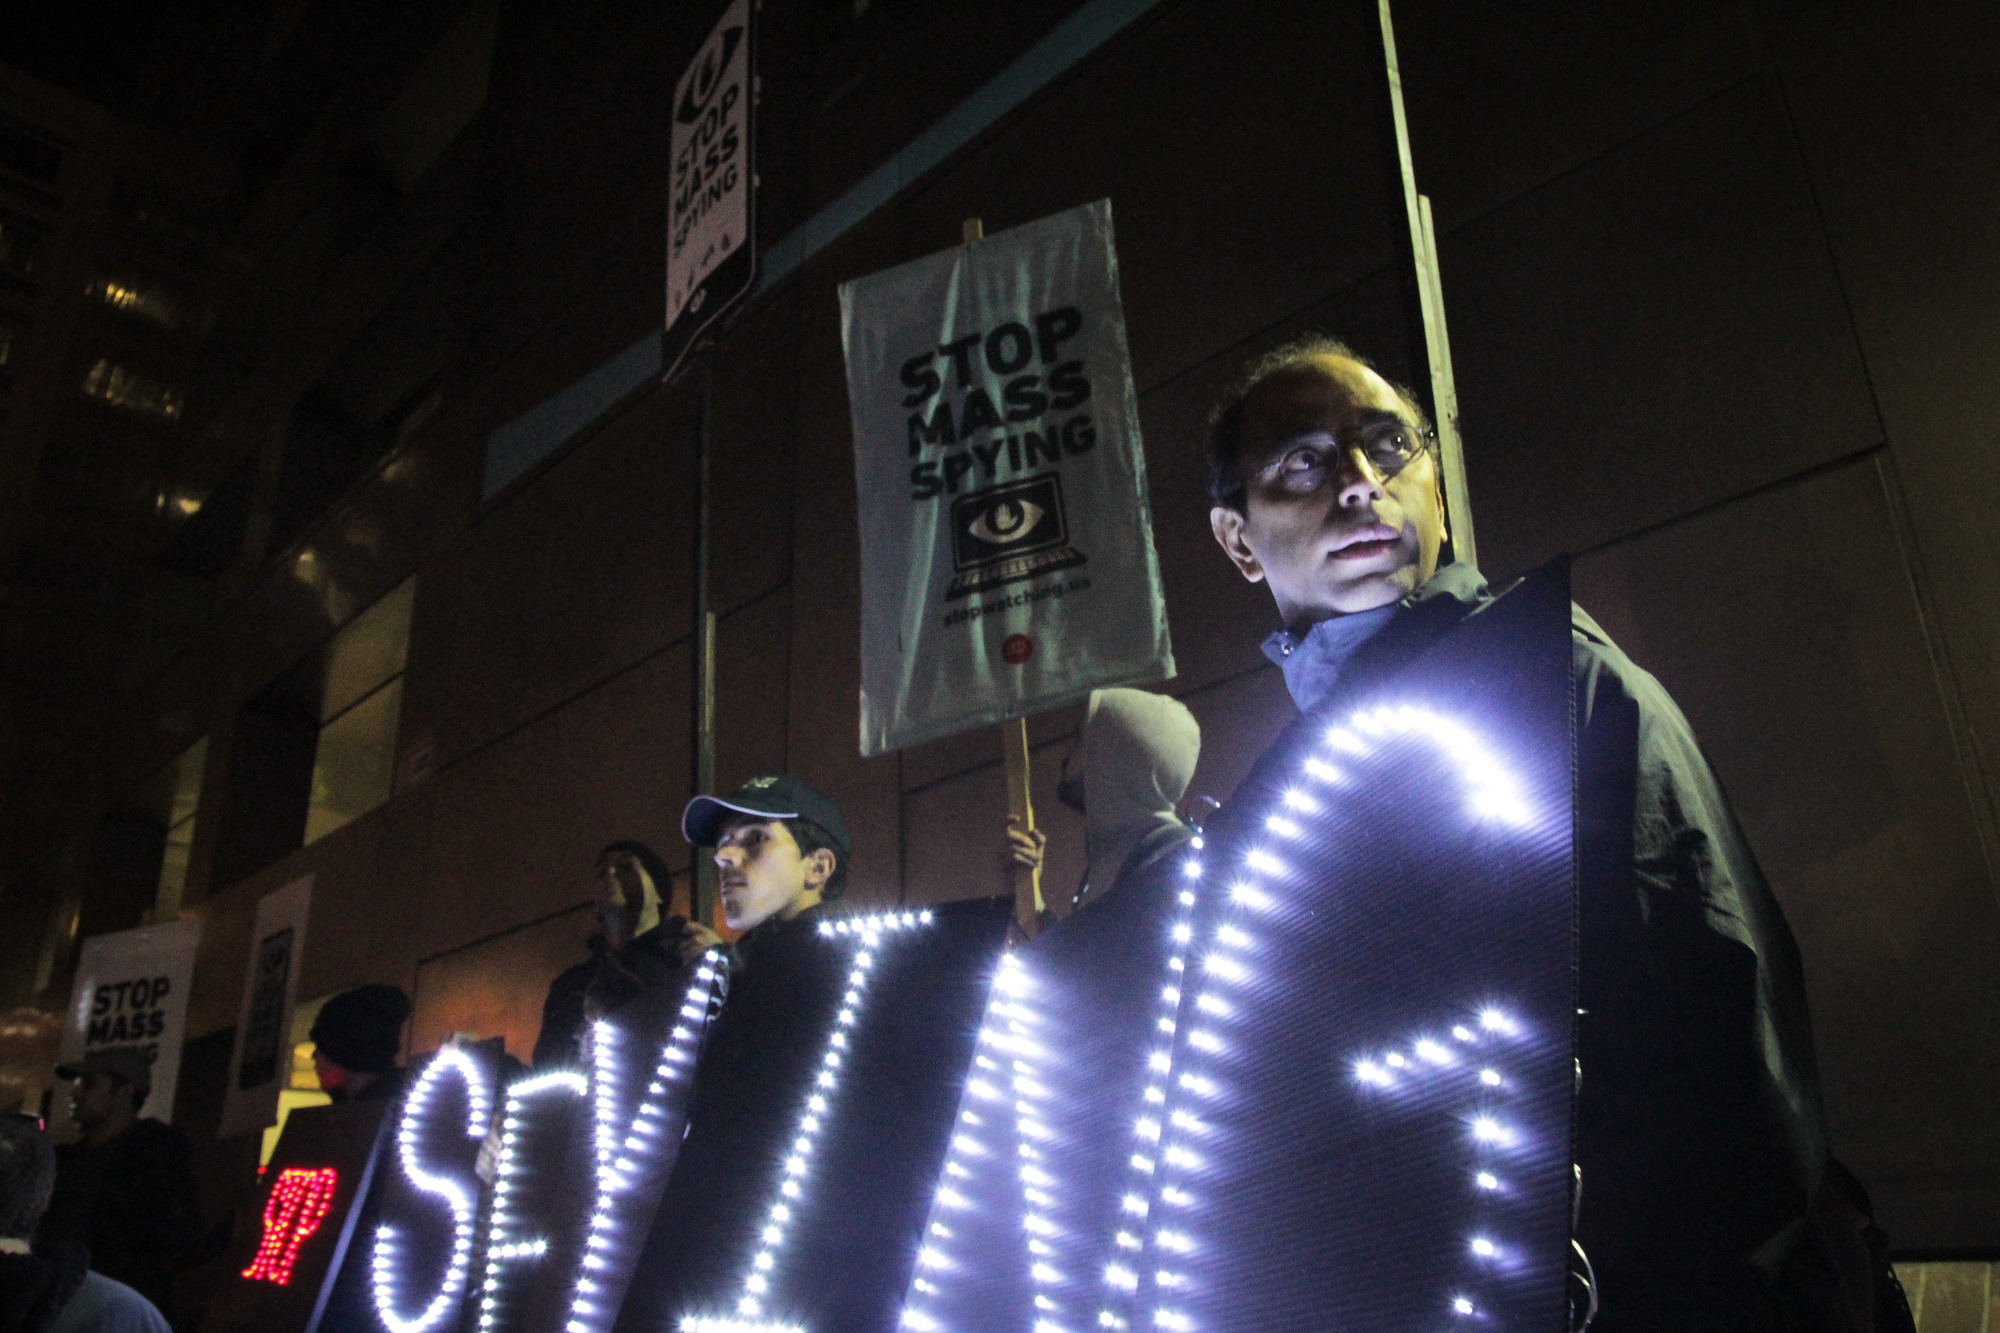 No Spying-Surveillance Protest